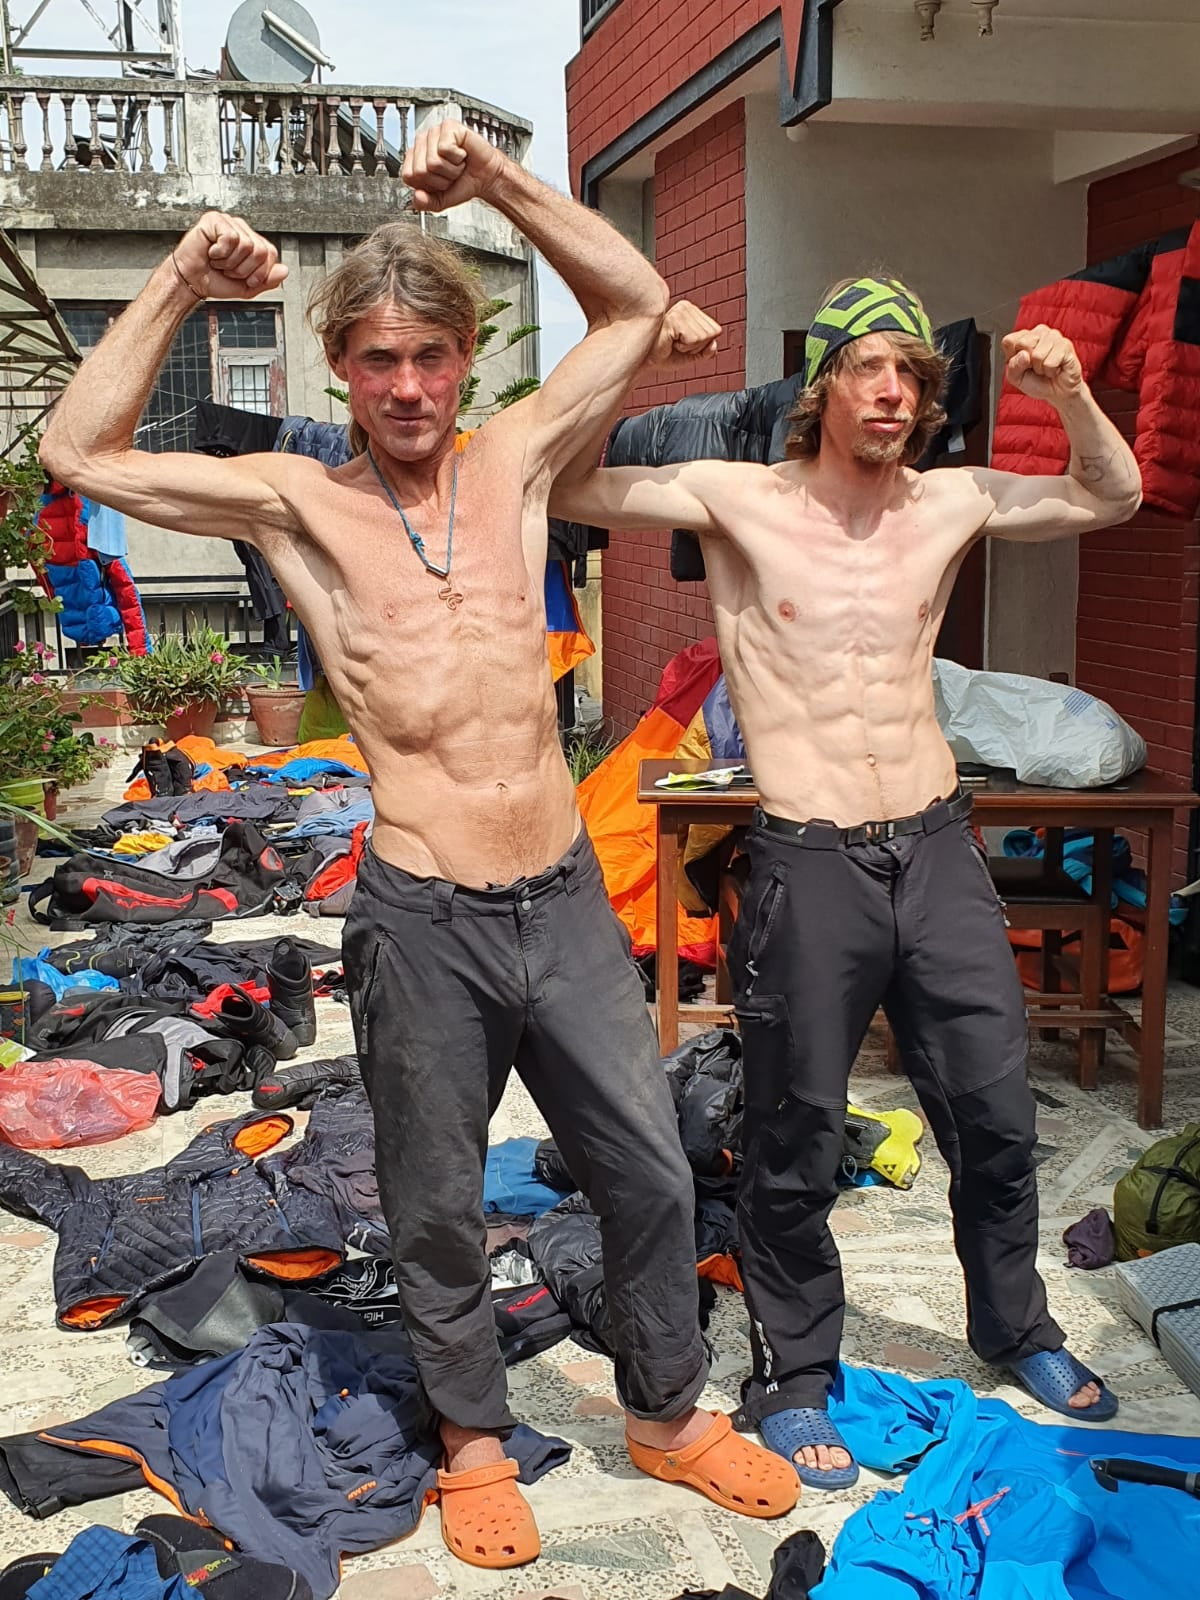 Two super-skinny climbers show their bones and muscles